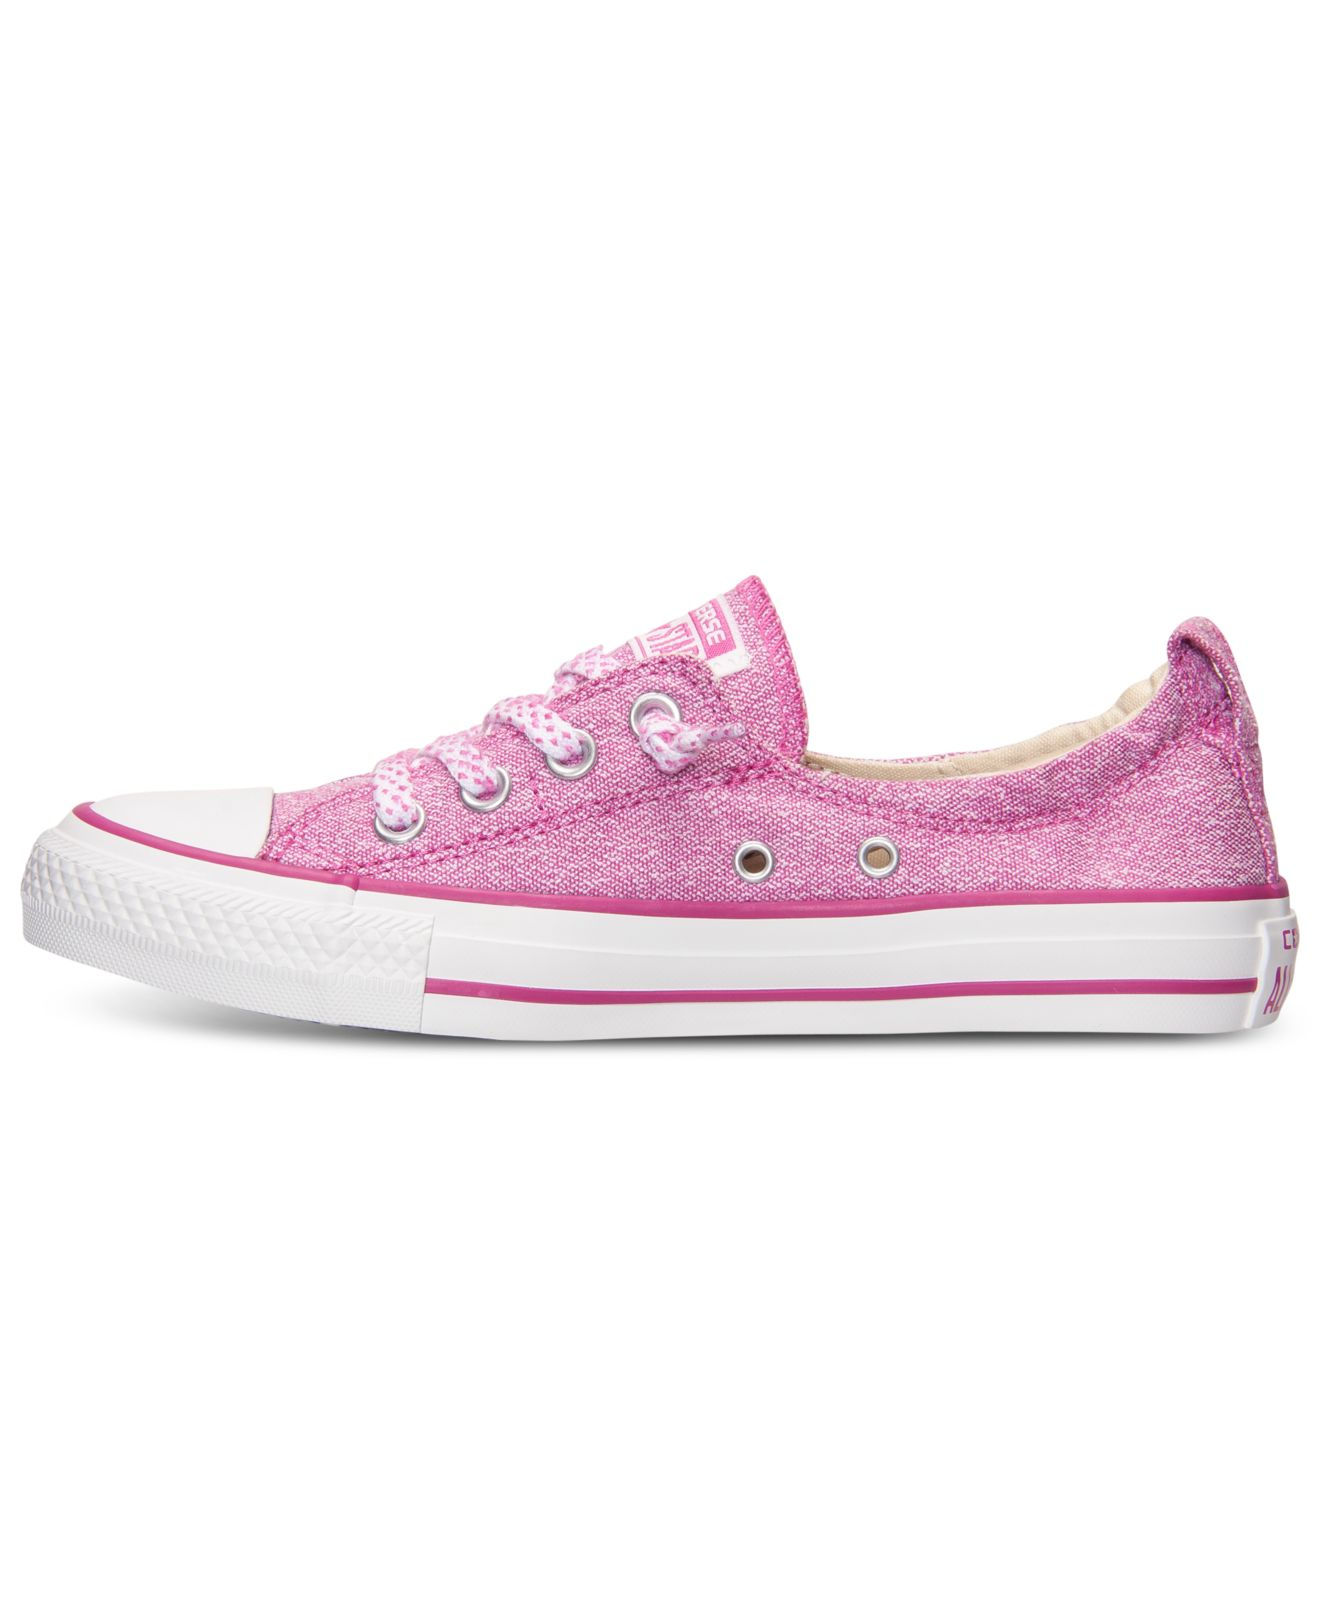 e3175f4f26d592 Gallery. Previously sold at  Macy s · Women s Converse Chuck Taylor ...